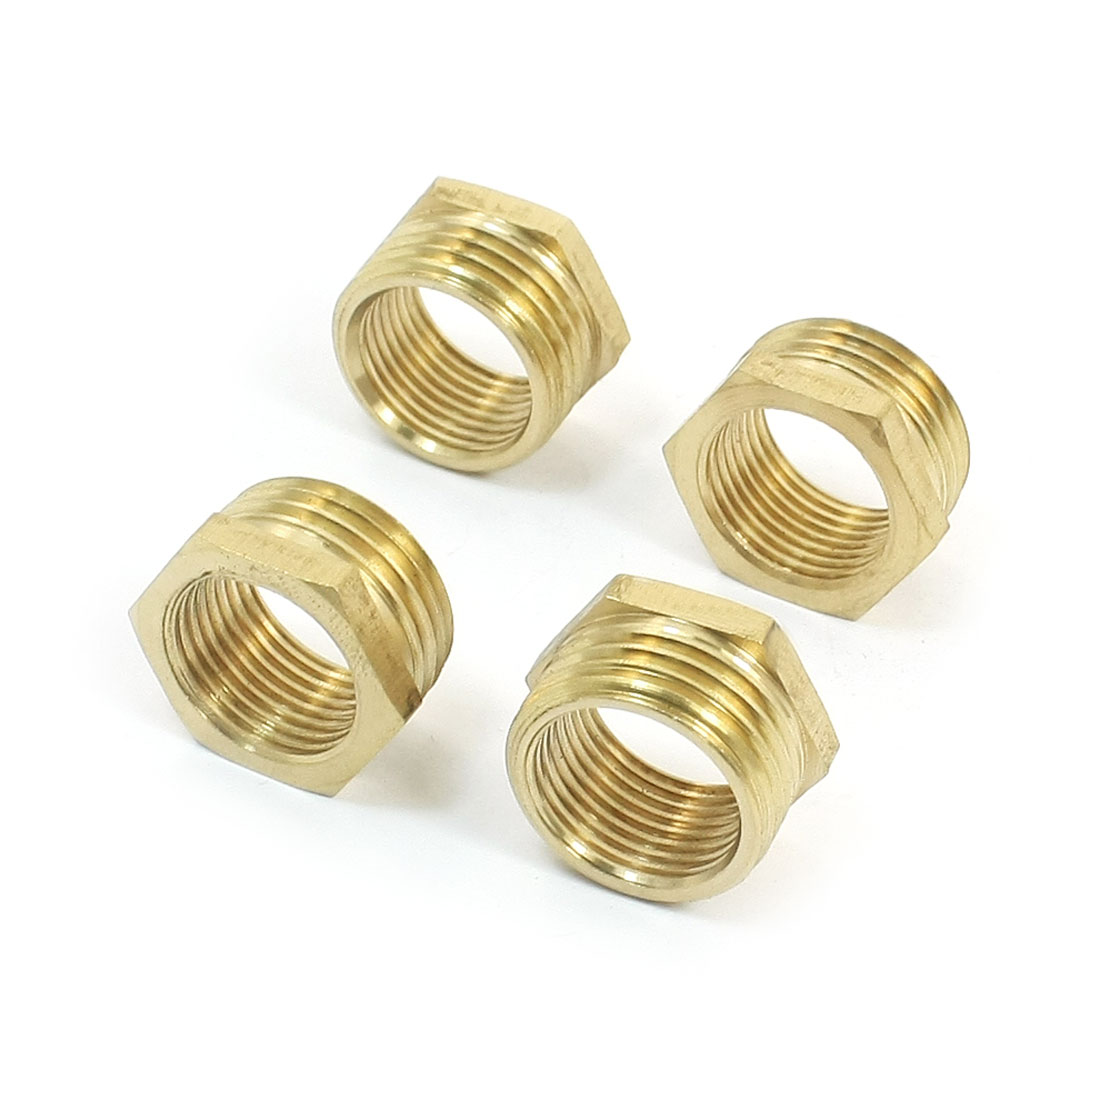 1/2PT x 3/8PT M/F Threaded Hex Head Gold Tone Brass Bushing Piping Fitting Connector Adapter 4Pcs